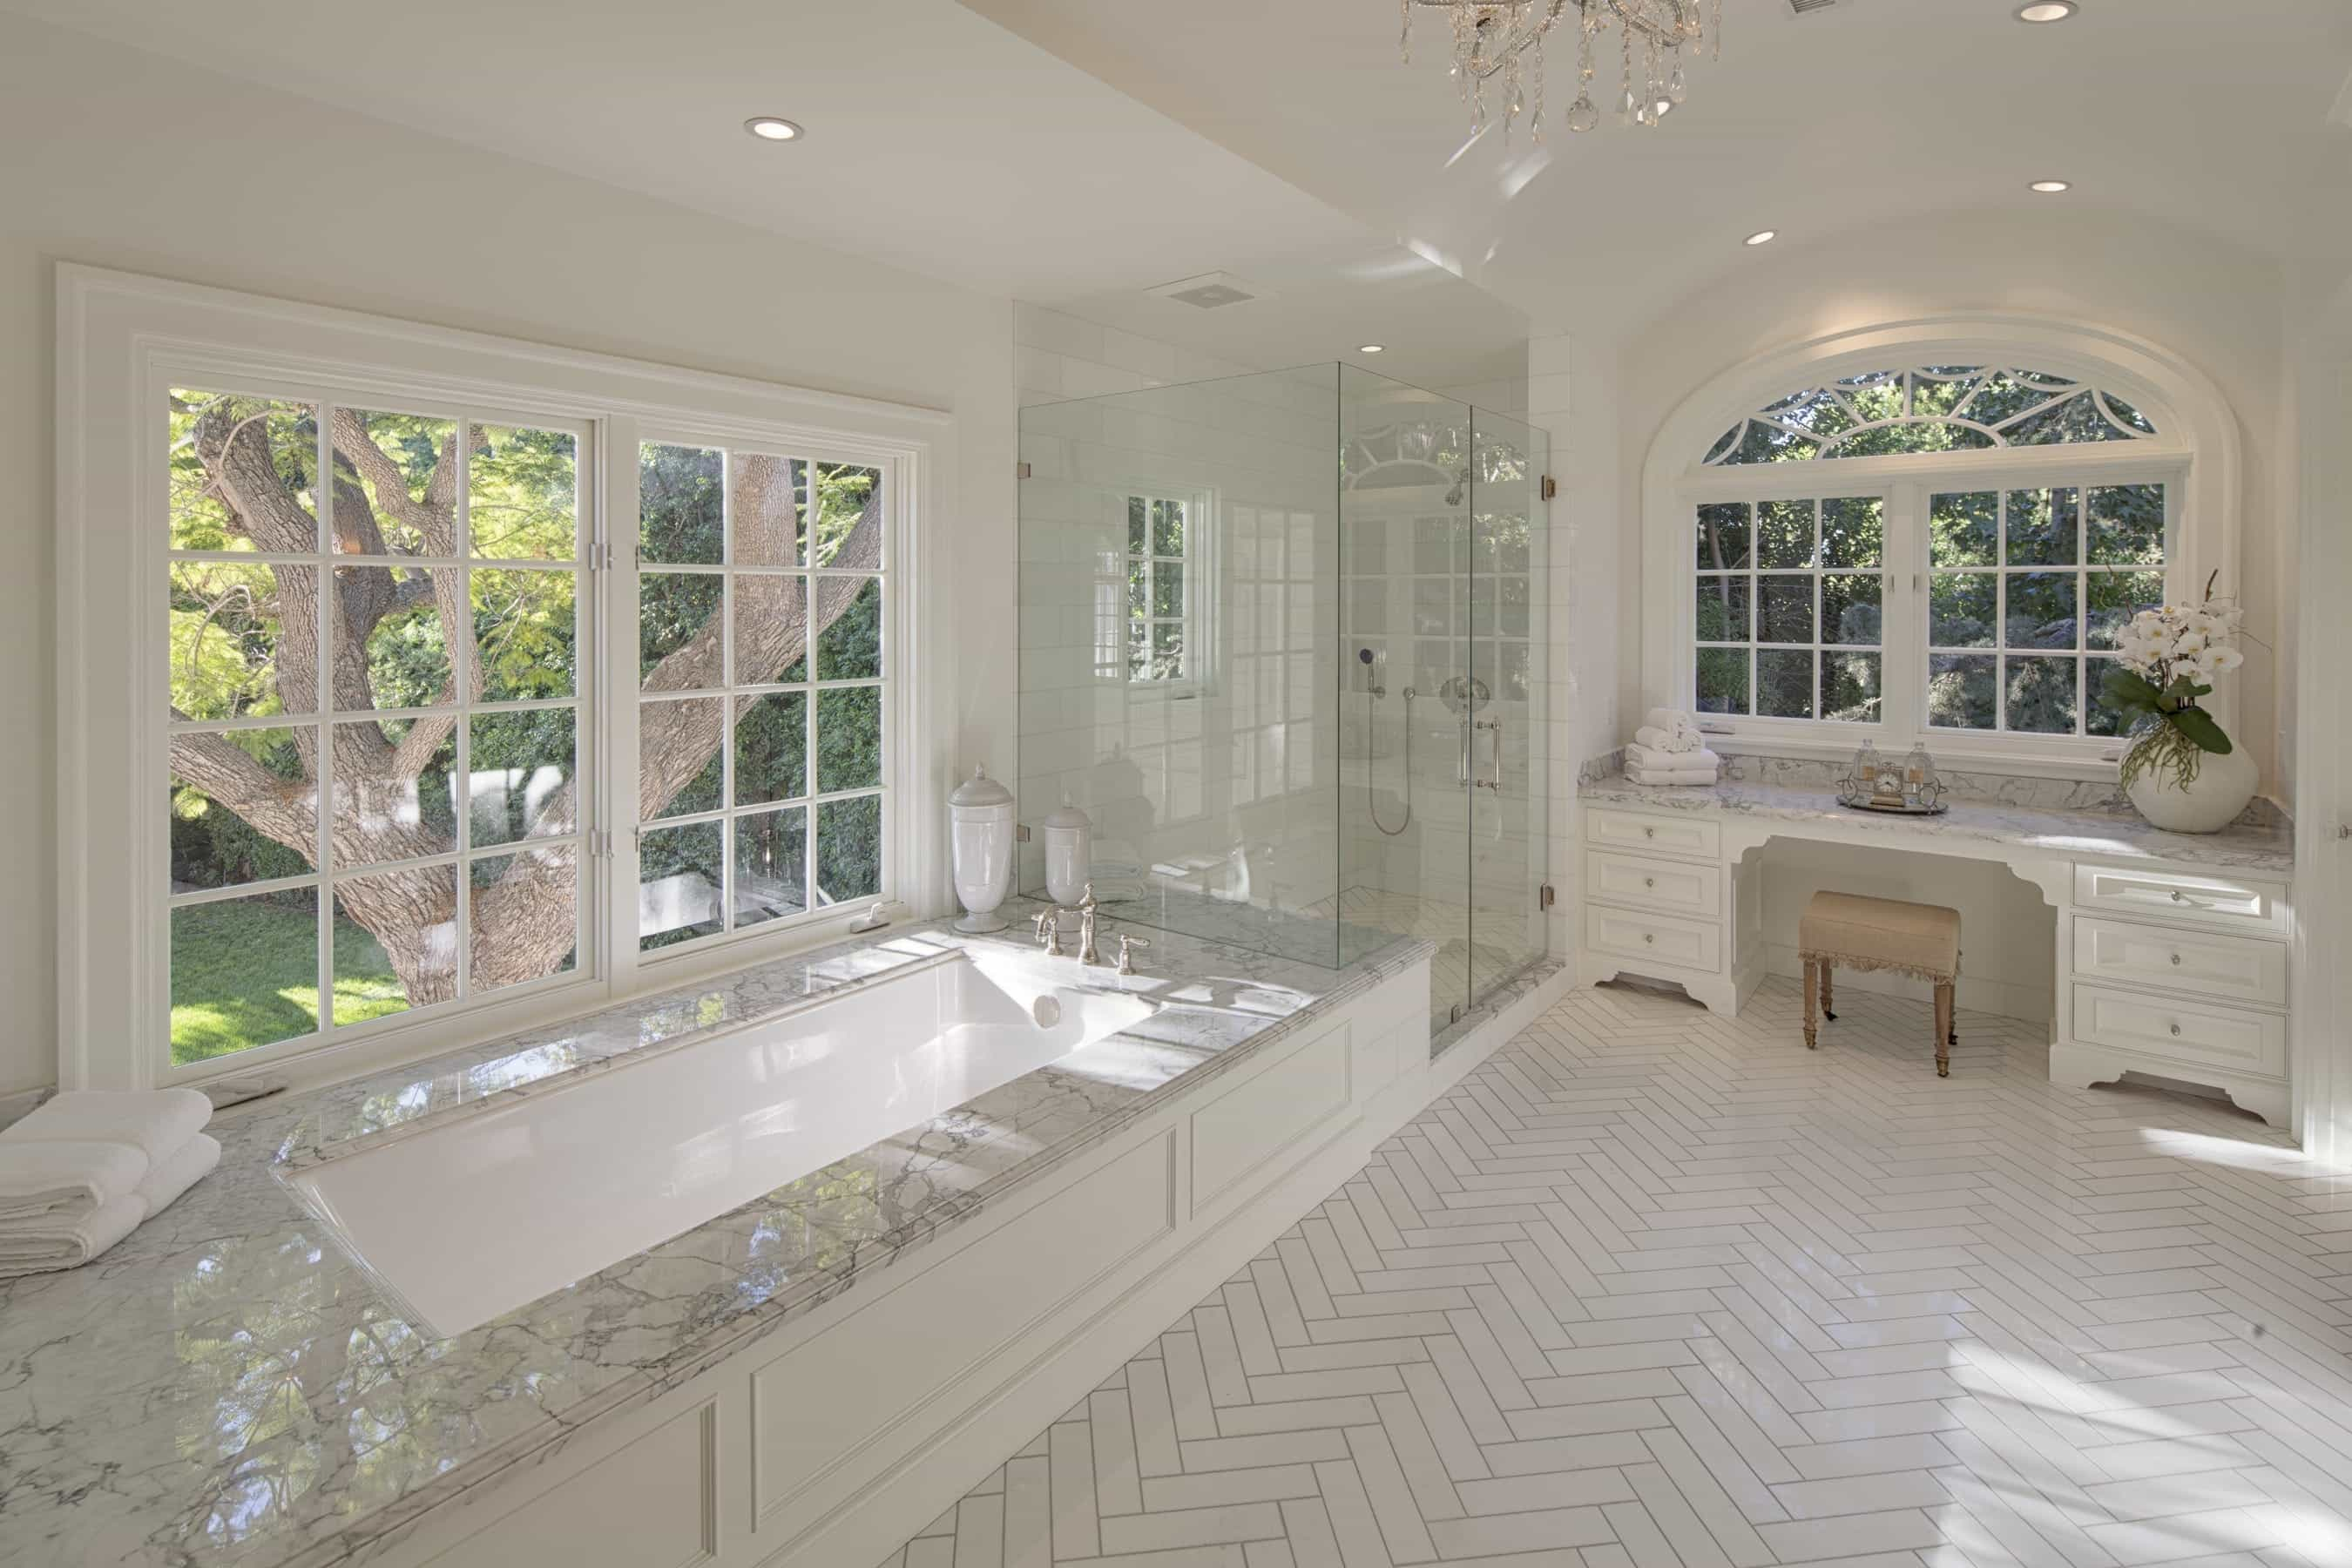 Luxurious, Traditional Bathroom With Herringbone Tile Floor (View 10 of 20)